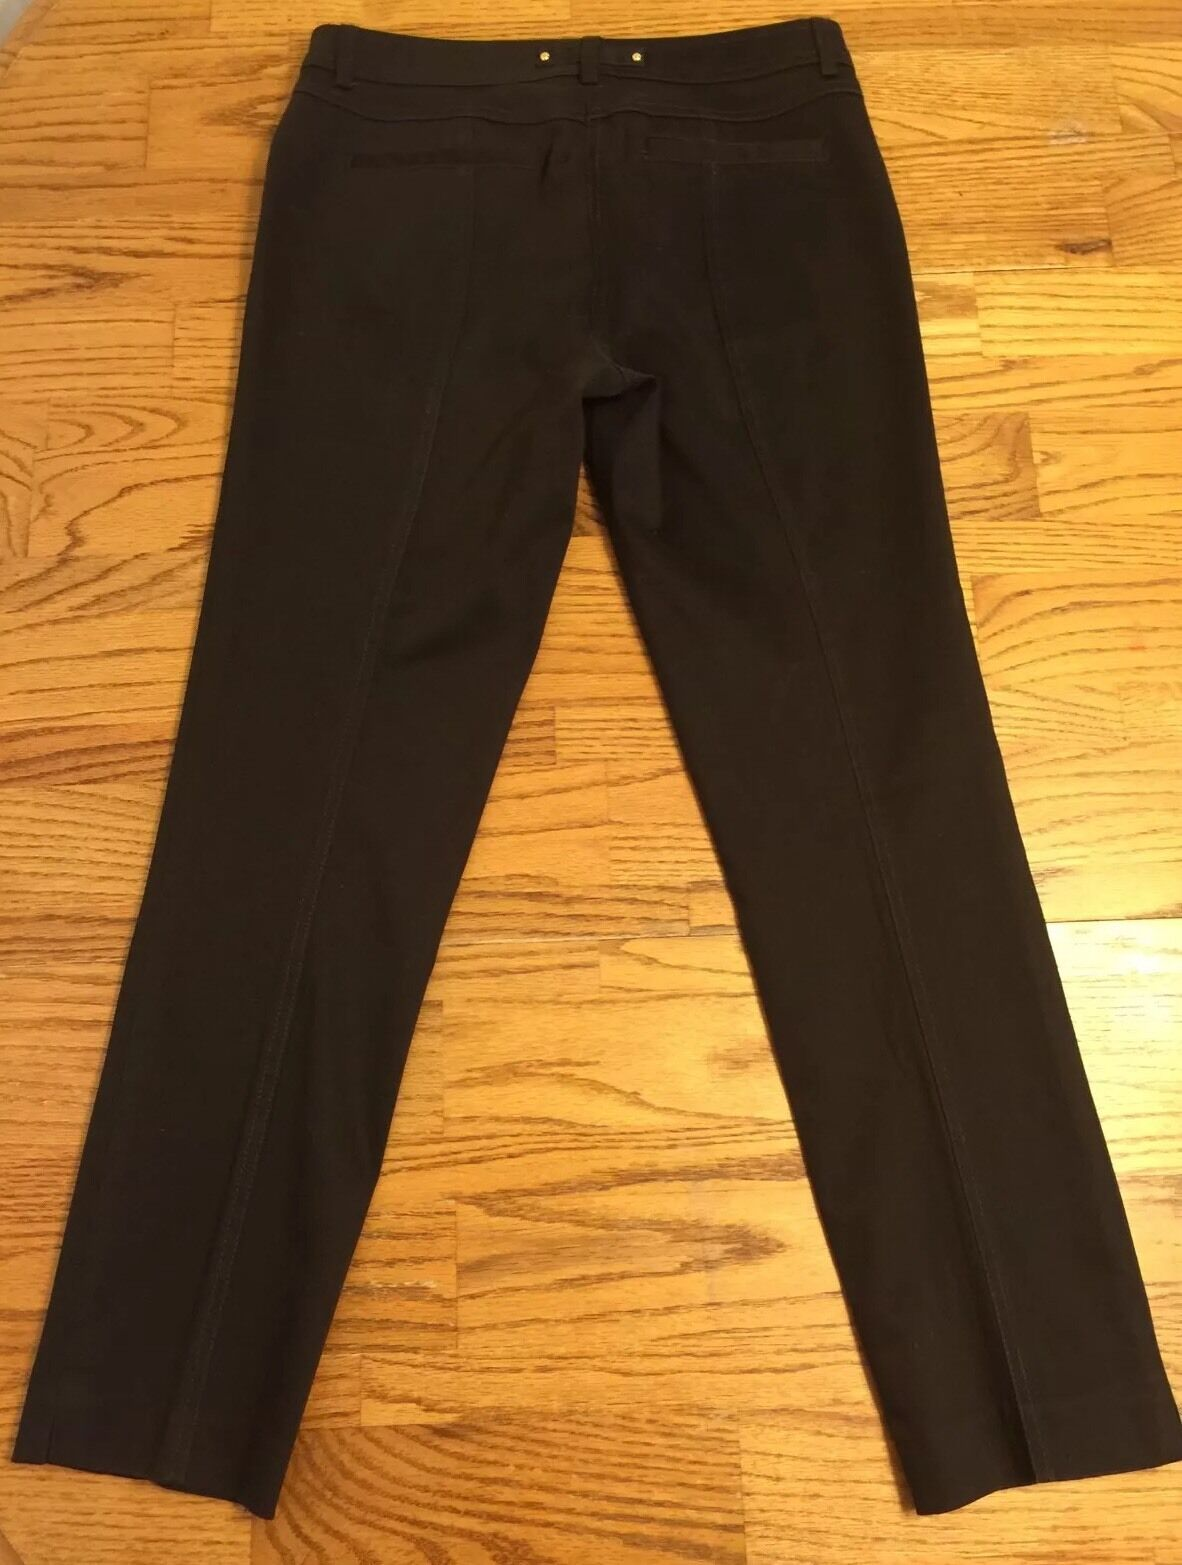 Chocolate Cache Pants Size 4 Classy Stretch Pleated Front Straight Leg Nice